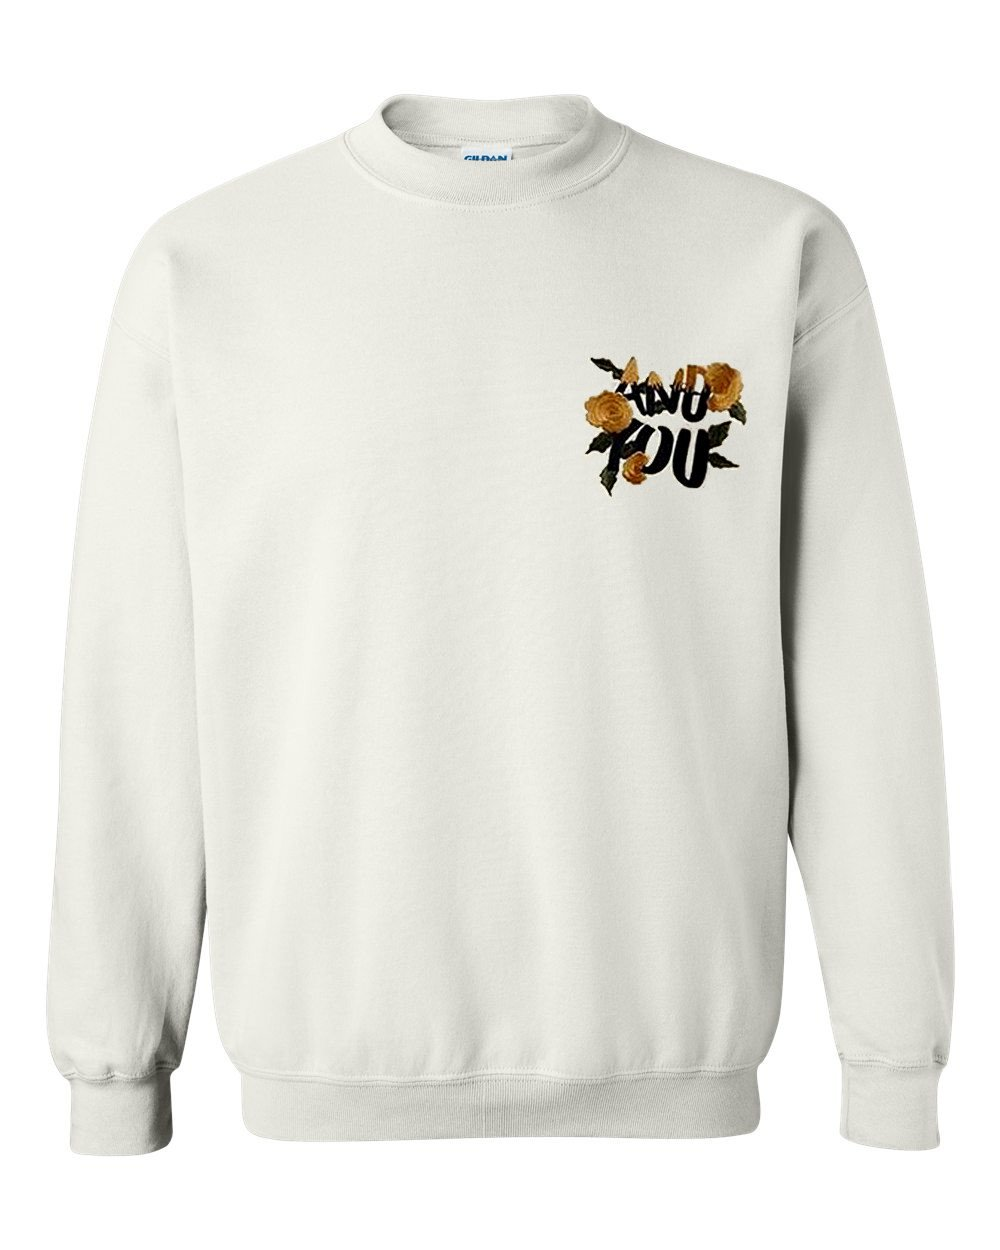 and you rose sweatshirt